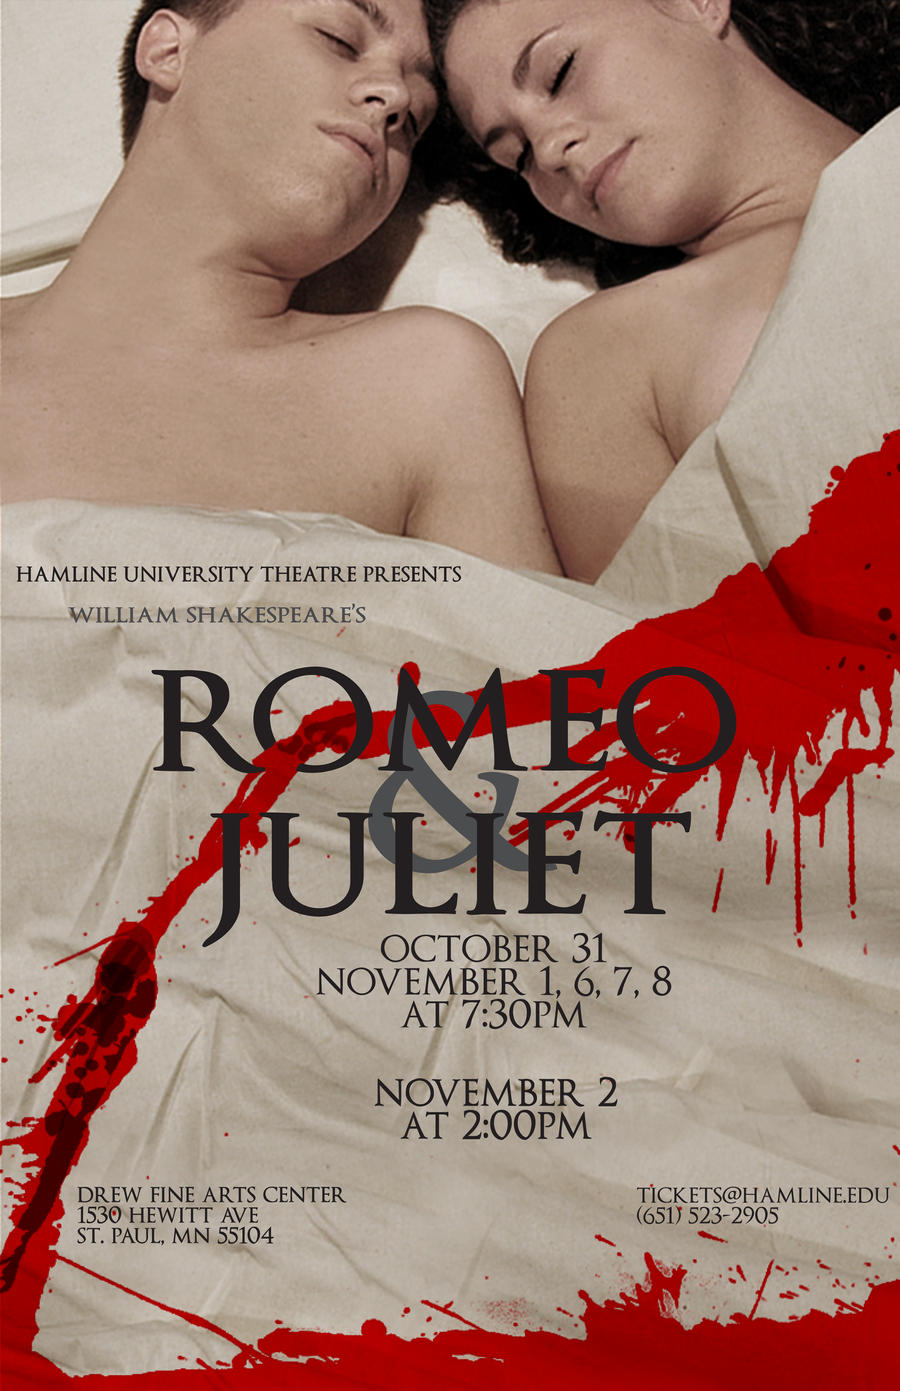 love not bliss romeo juliet othello thesis Romeo and juliet othello 8 alternate endings we would love to read by taylor noles feb 7 where they are reconciled in romantic bliss.